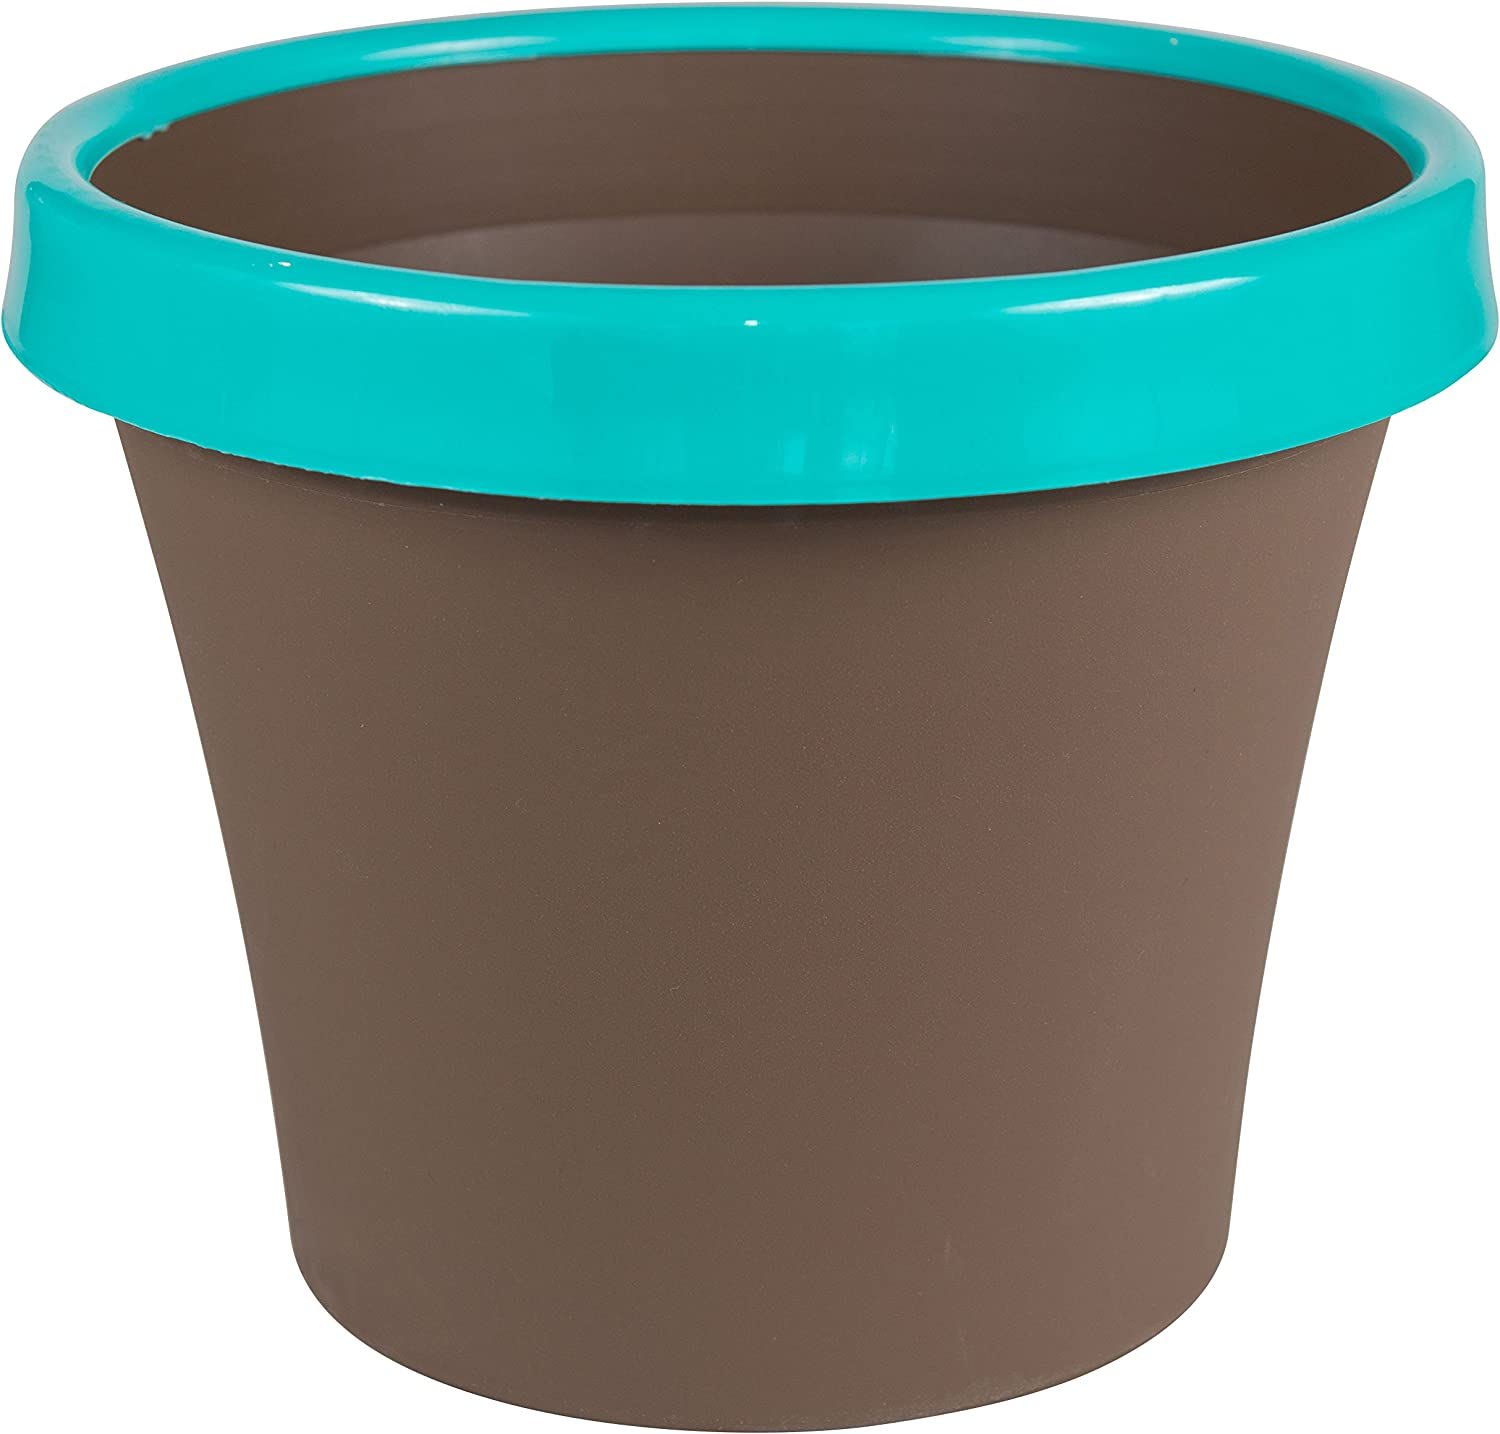 Bloem Terra Two-Tone Planter 12 Chocolate w Calypso